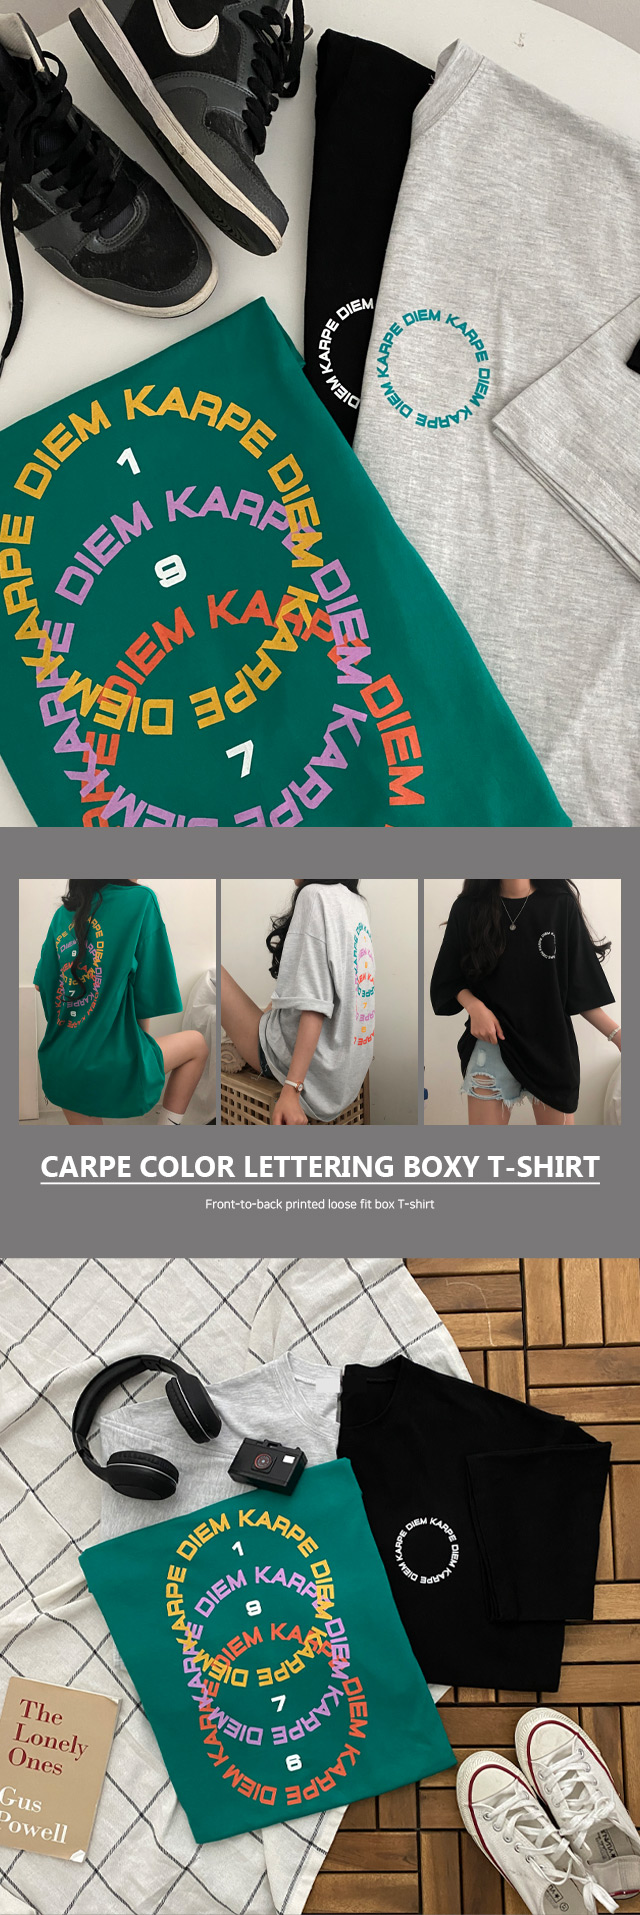 Short-sleeved T-shirt with Carpe Color Lettering